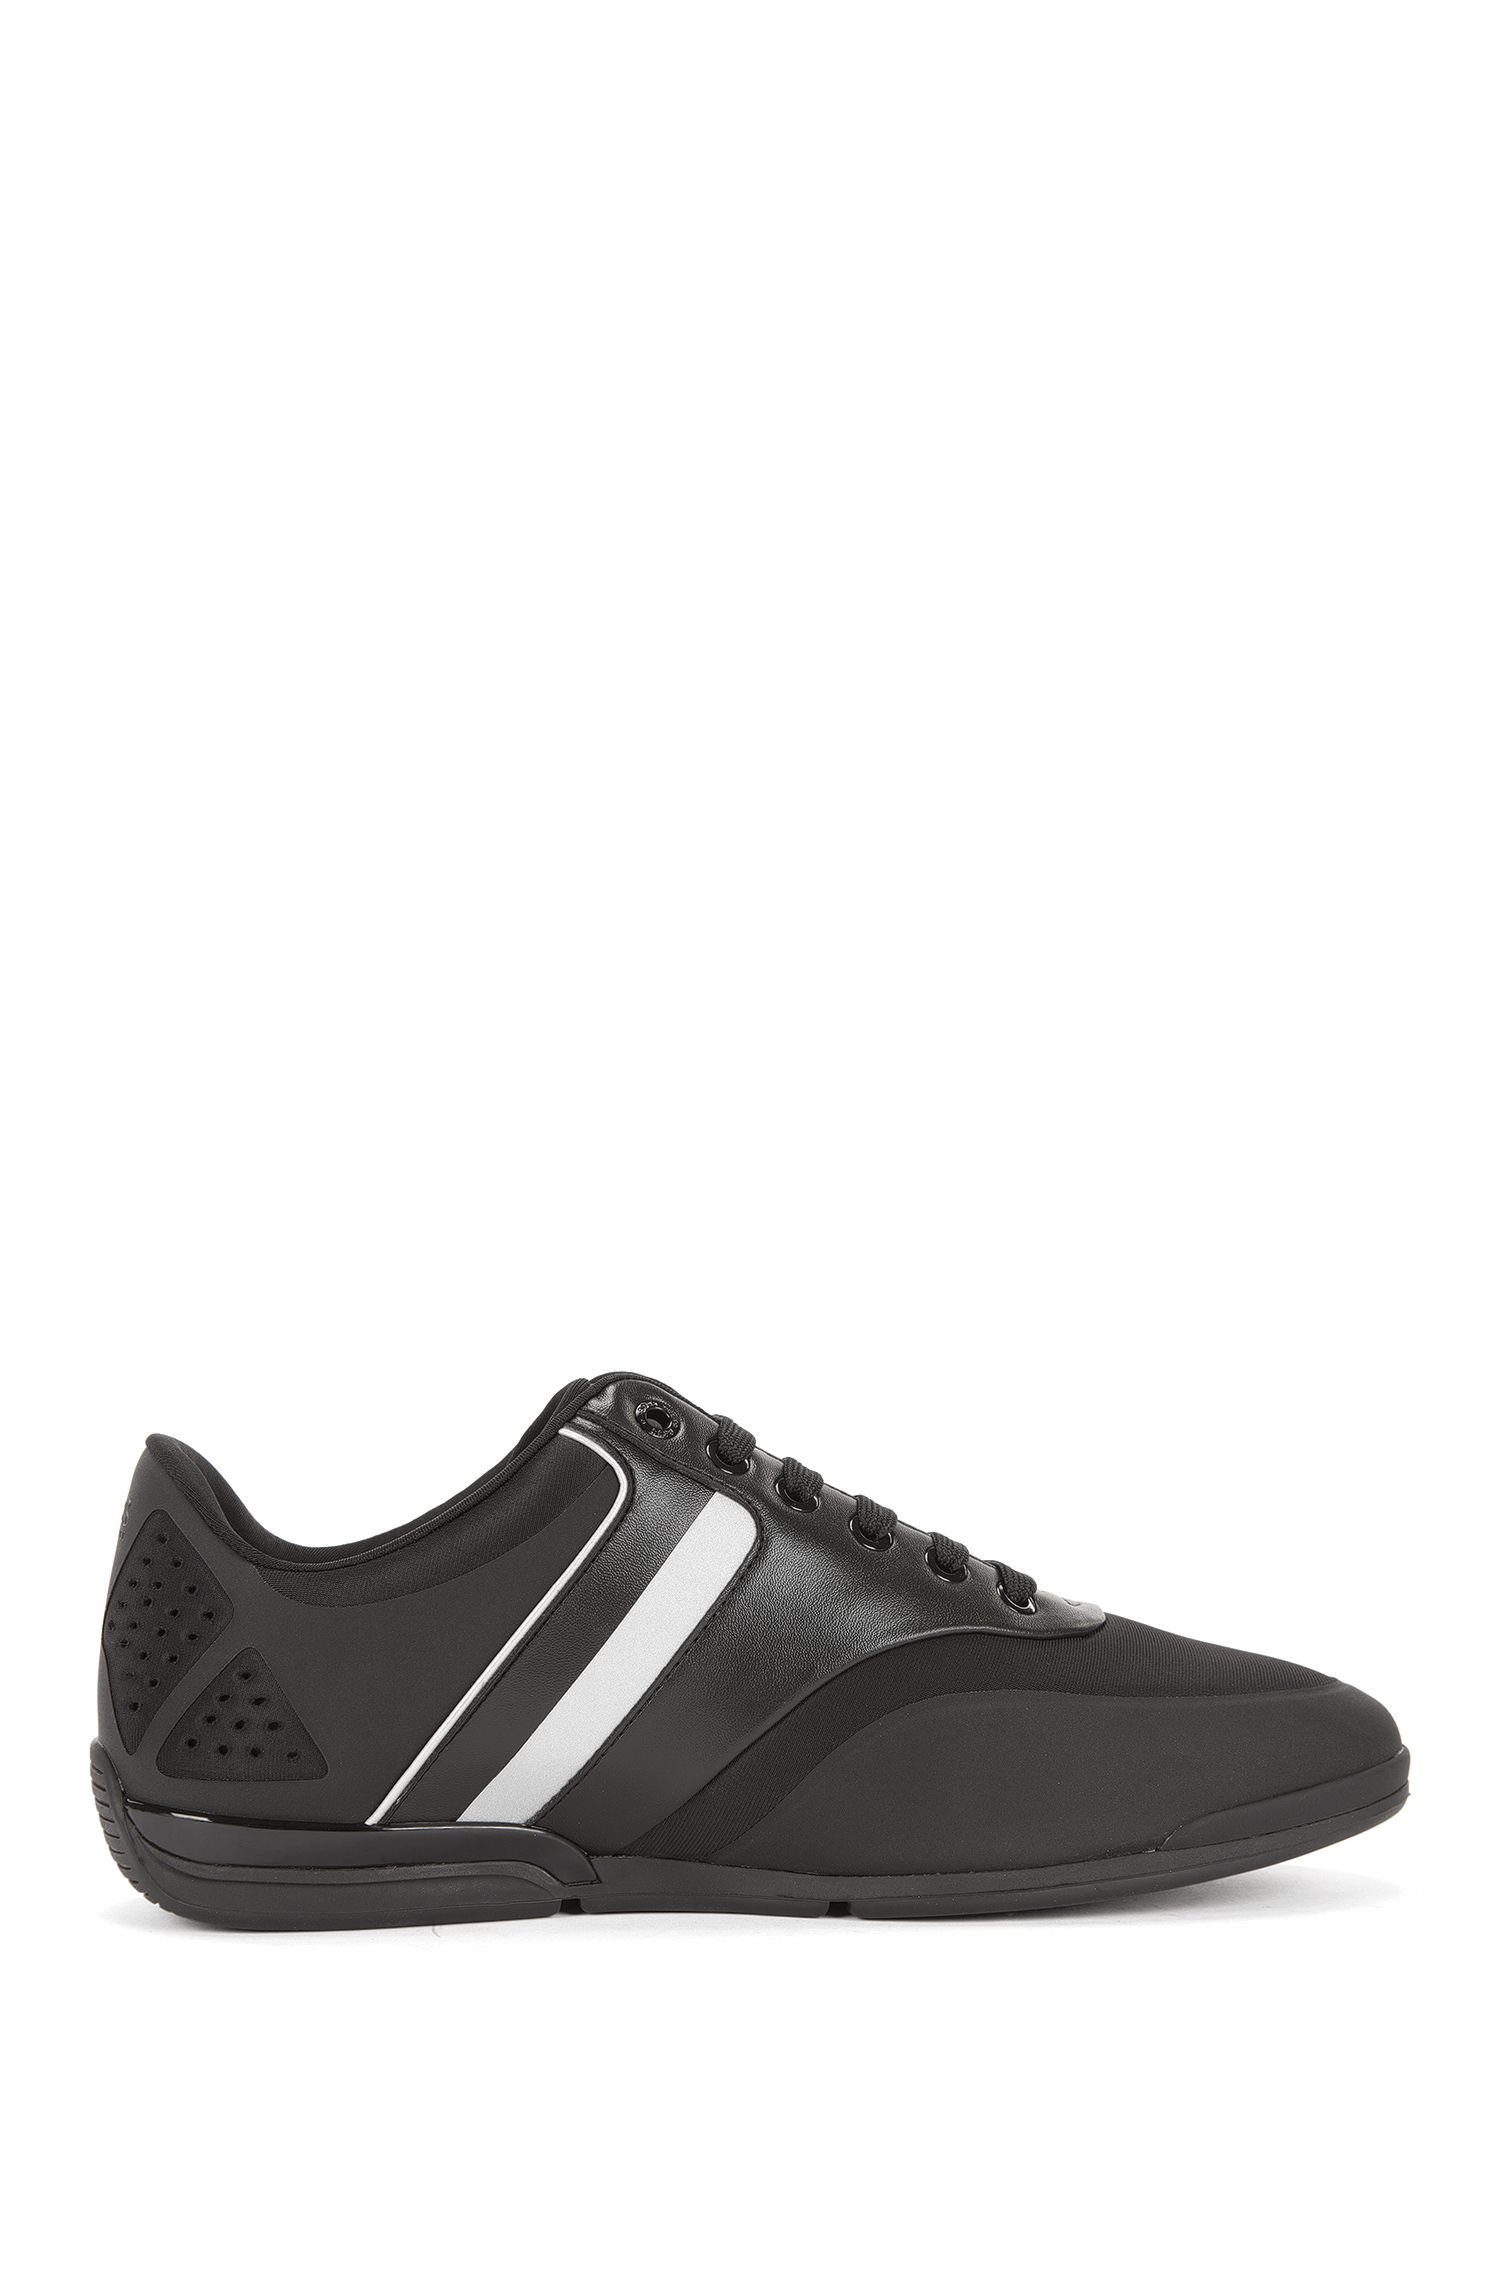 Vegan Leather Sneaker | Saturn Lowp Neo